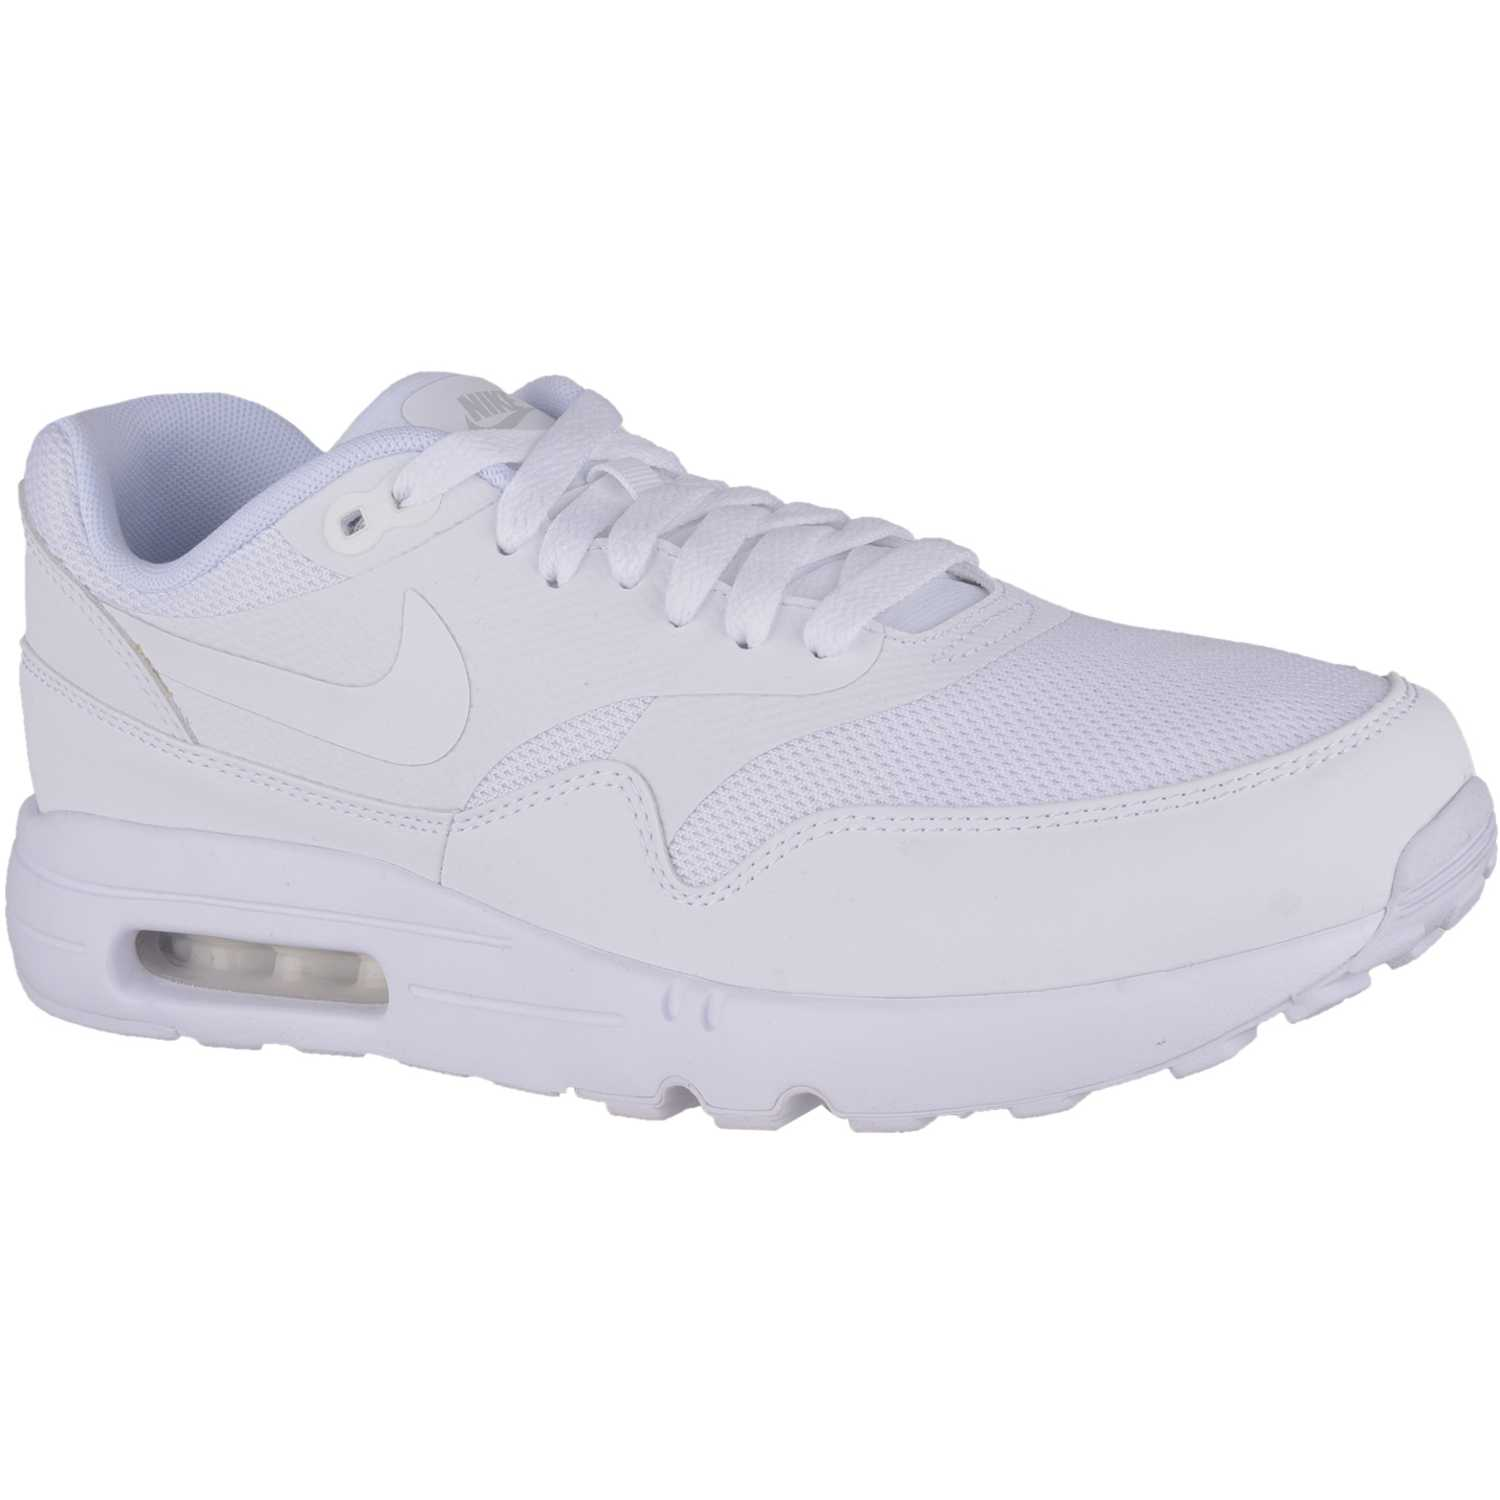 011e74a4 Casual de Hombre Nike Blanco air max 1 ultra 2.0 essential ...